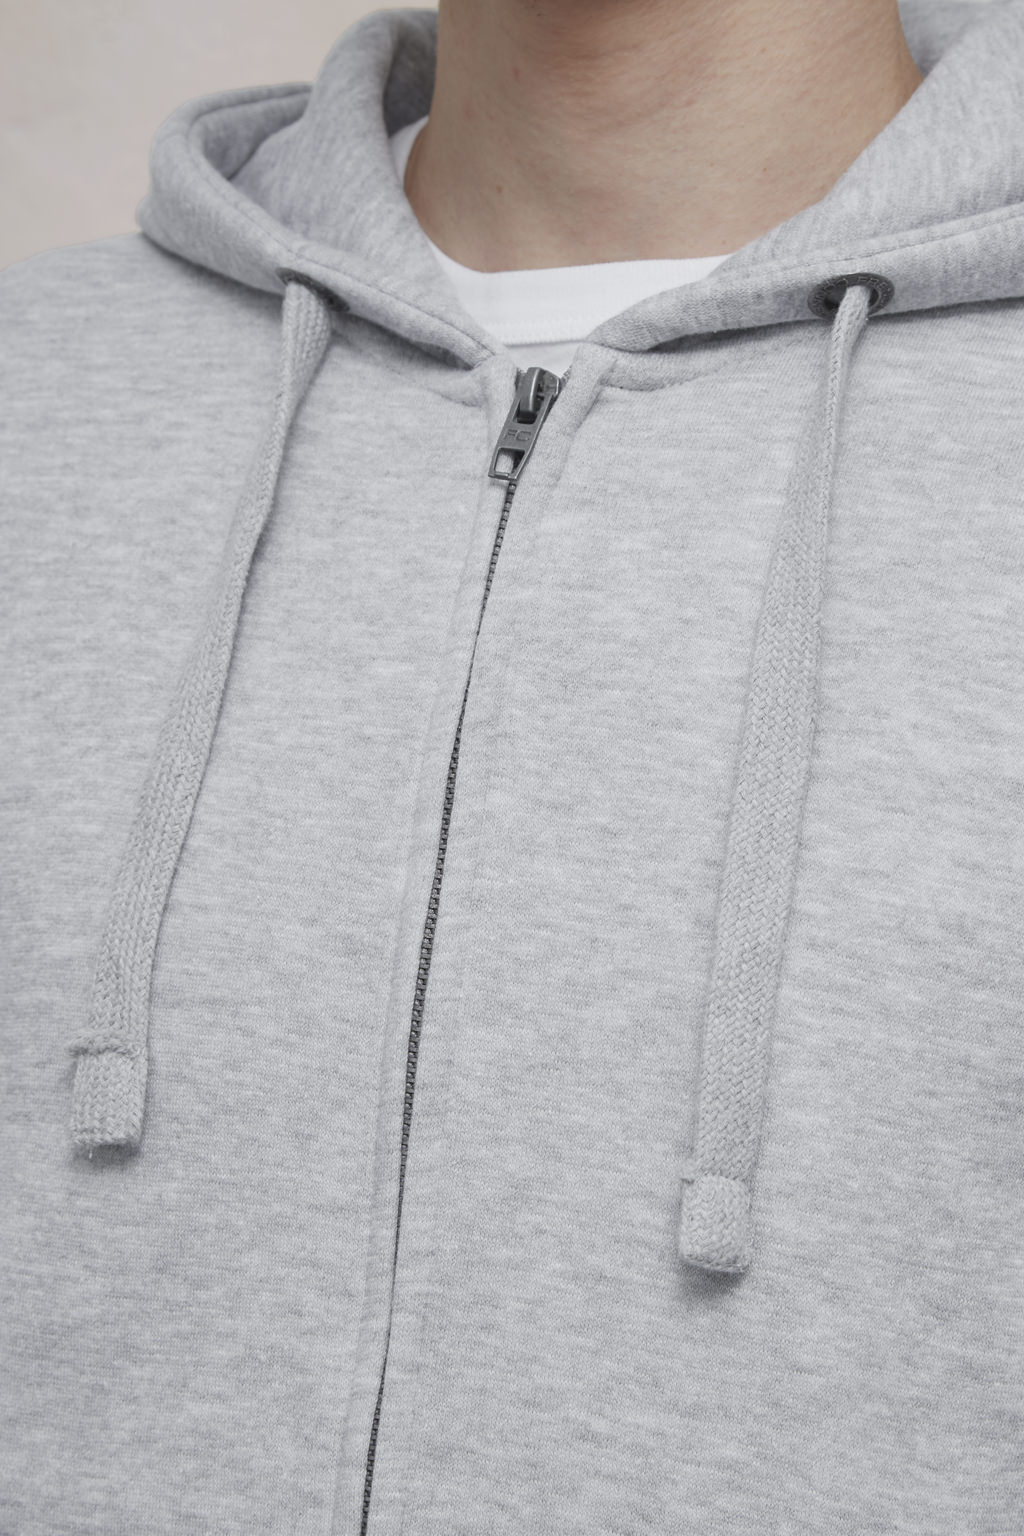 French Connection Men/'s Zip Through Hoodie Lt Grey Size M